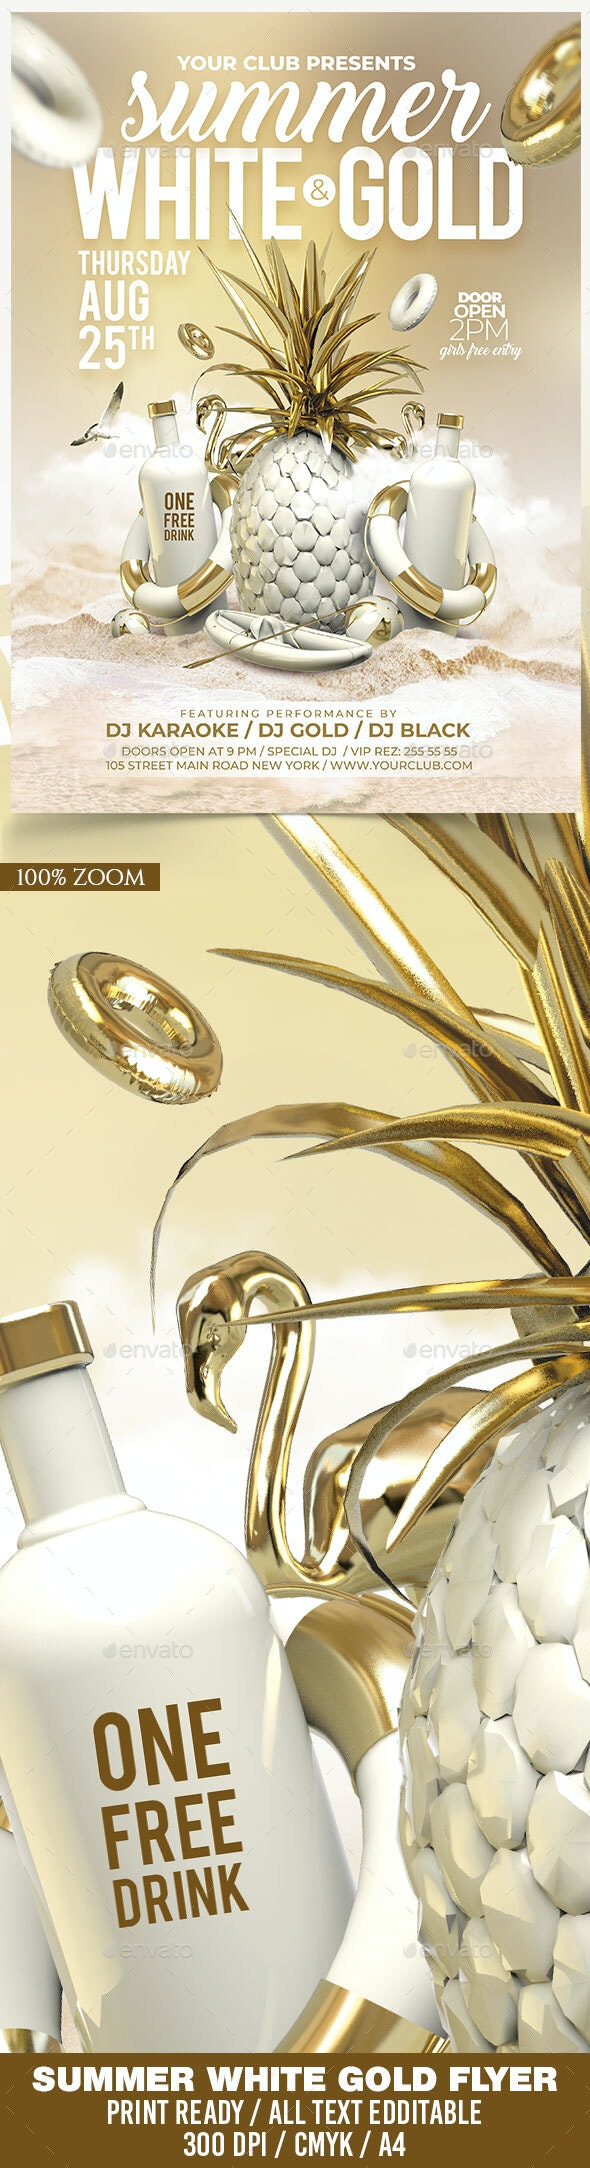 Summer White Gold - Clubs & Parties Events